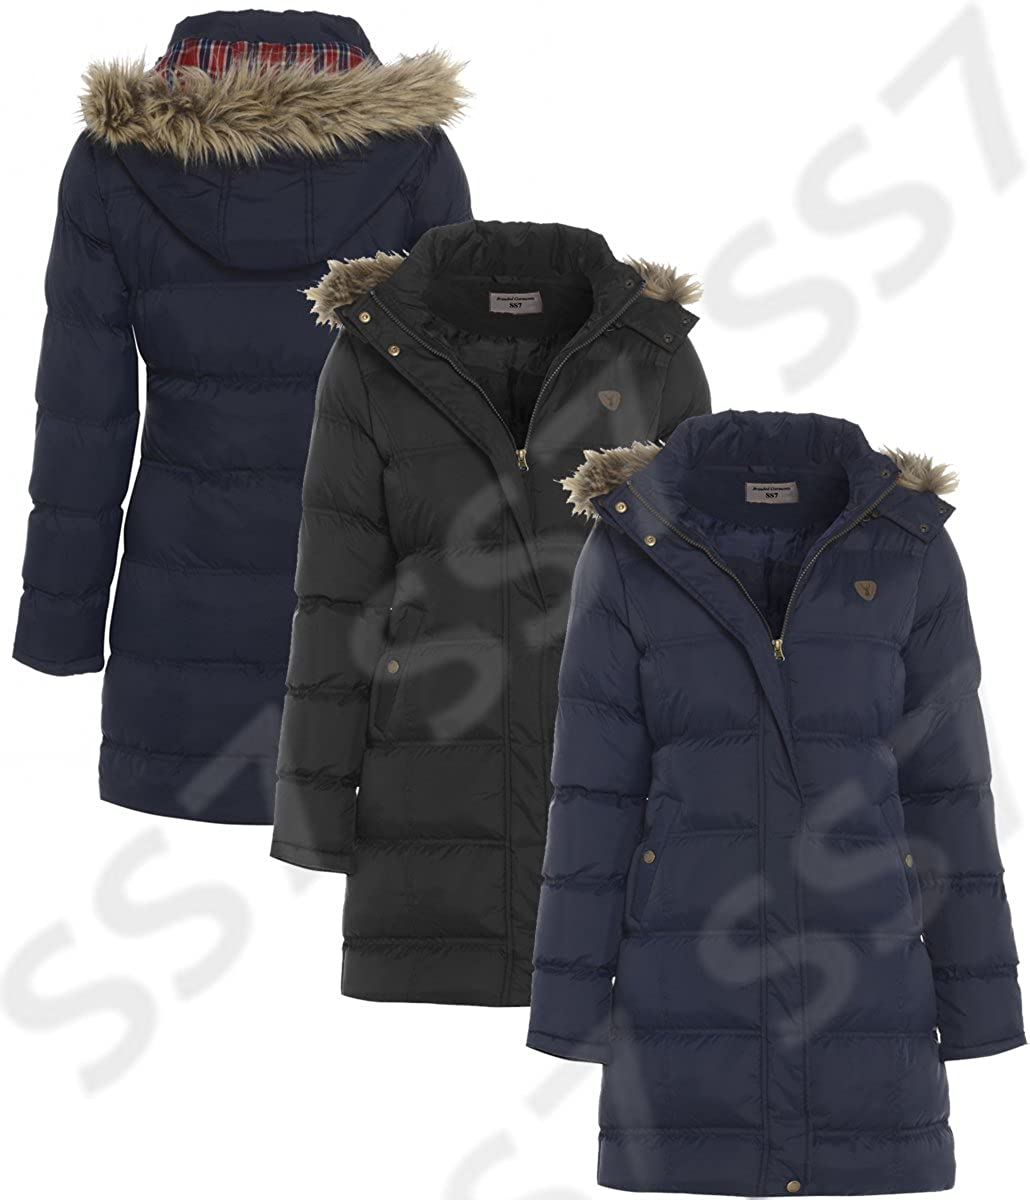 Ladies Navy Parka Jacket | Jackets Review